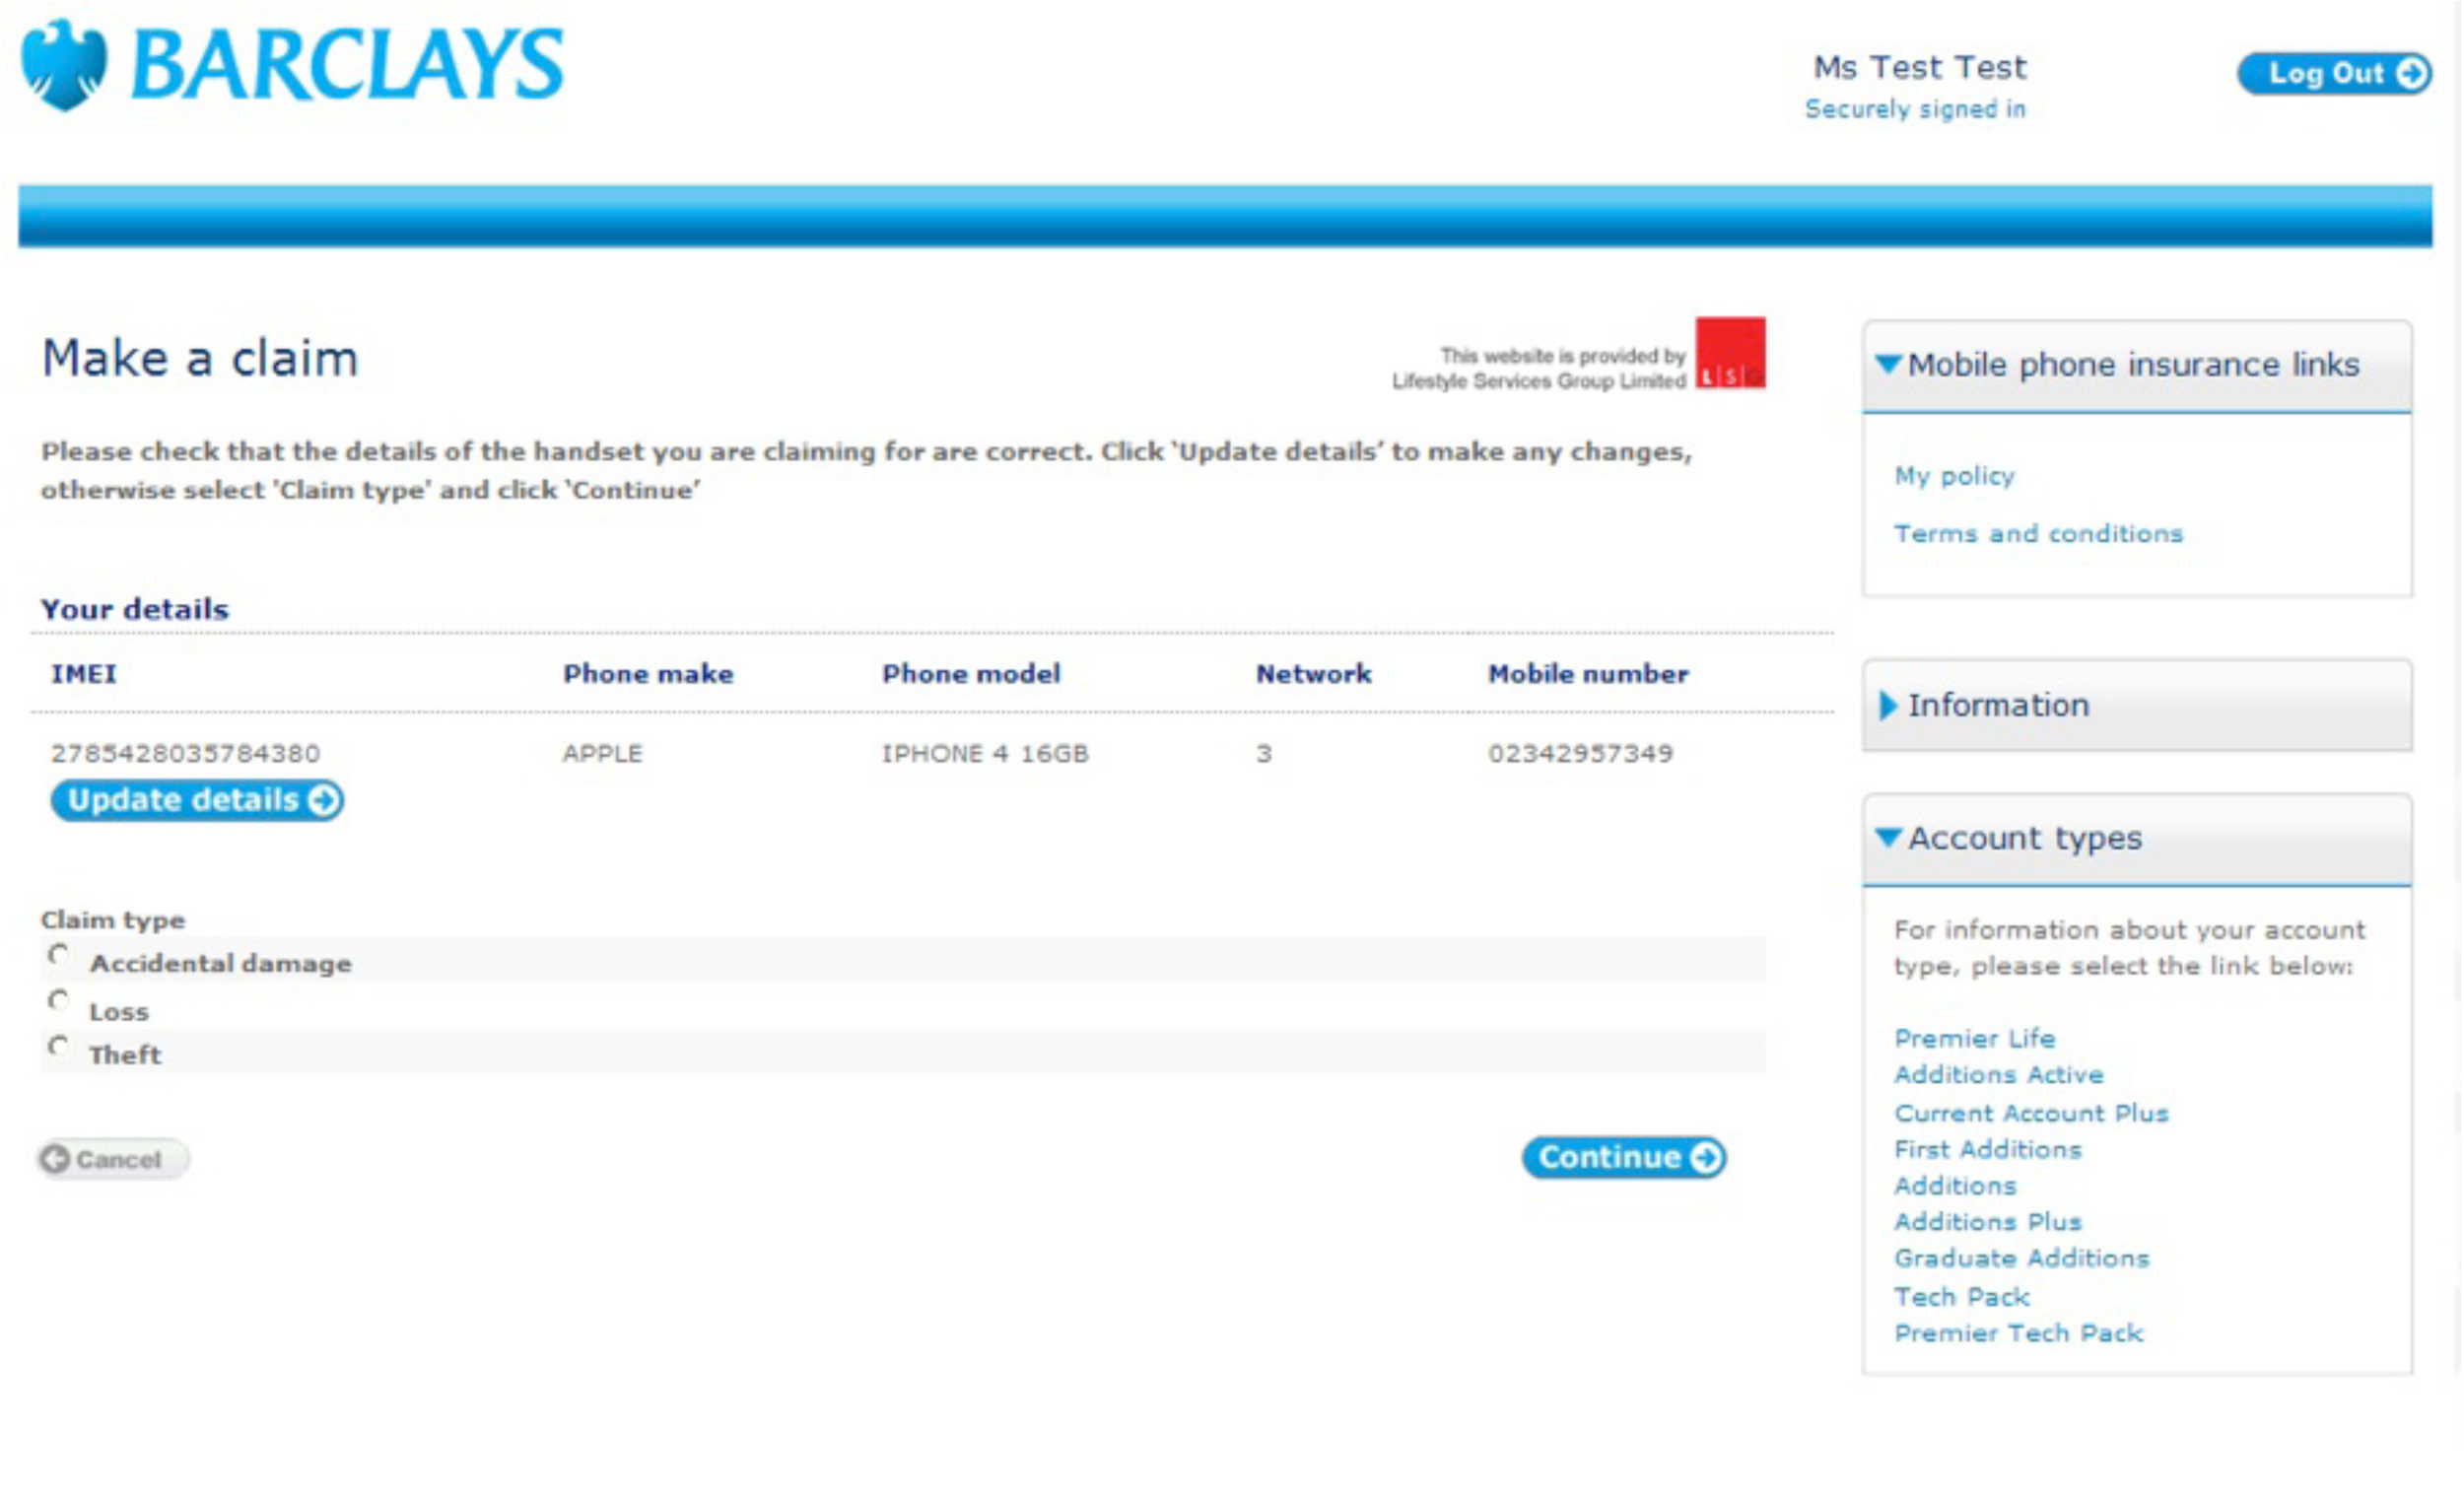 Barclays mobile insurance site